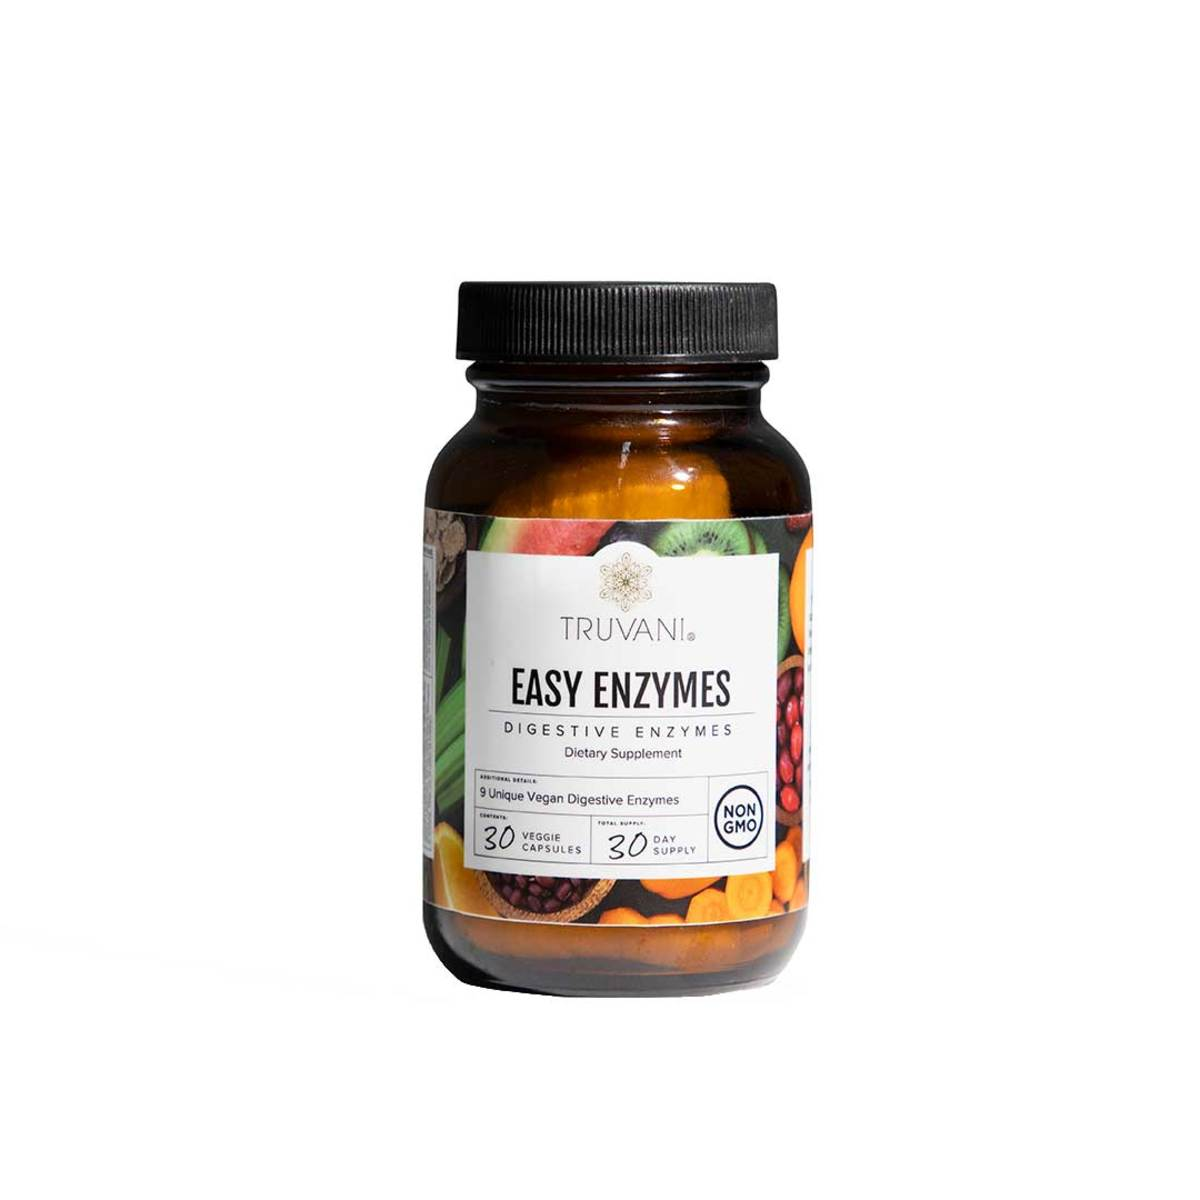 truvani_easy_enzymes_bottle_front